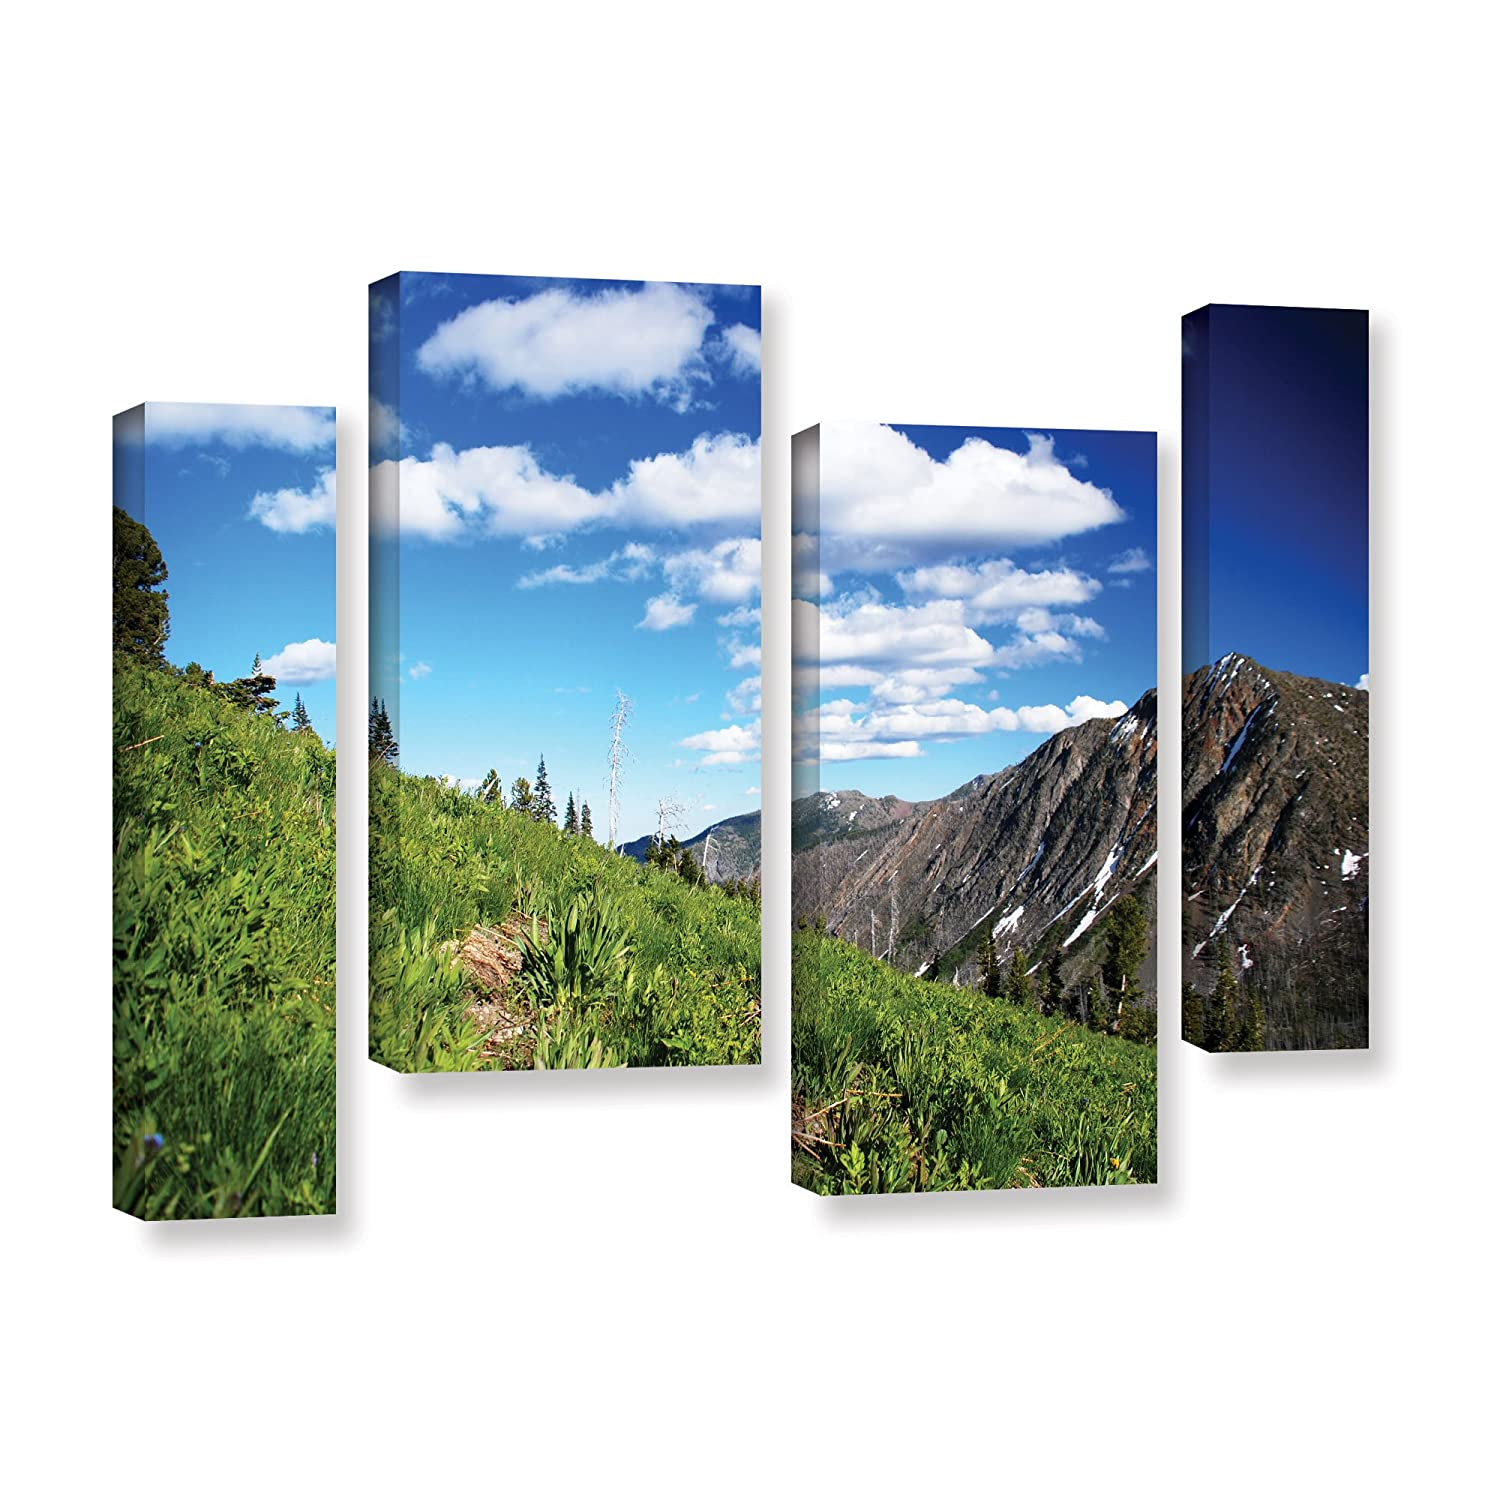 Artwall Dan Wilson S Mountain Meadow 4 Piece Gallery Wrapped Canvas Staggered Set 36x54 Amazon In Home Kitchen